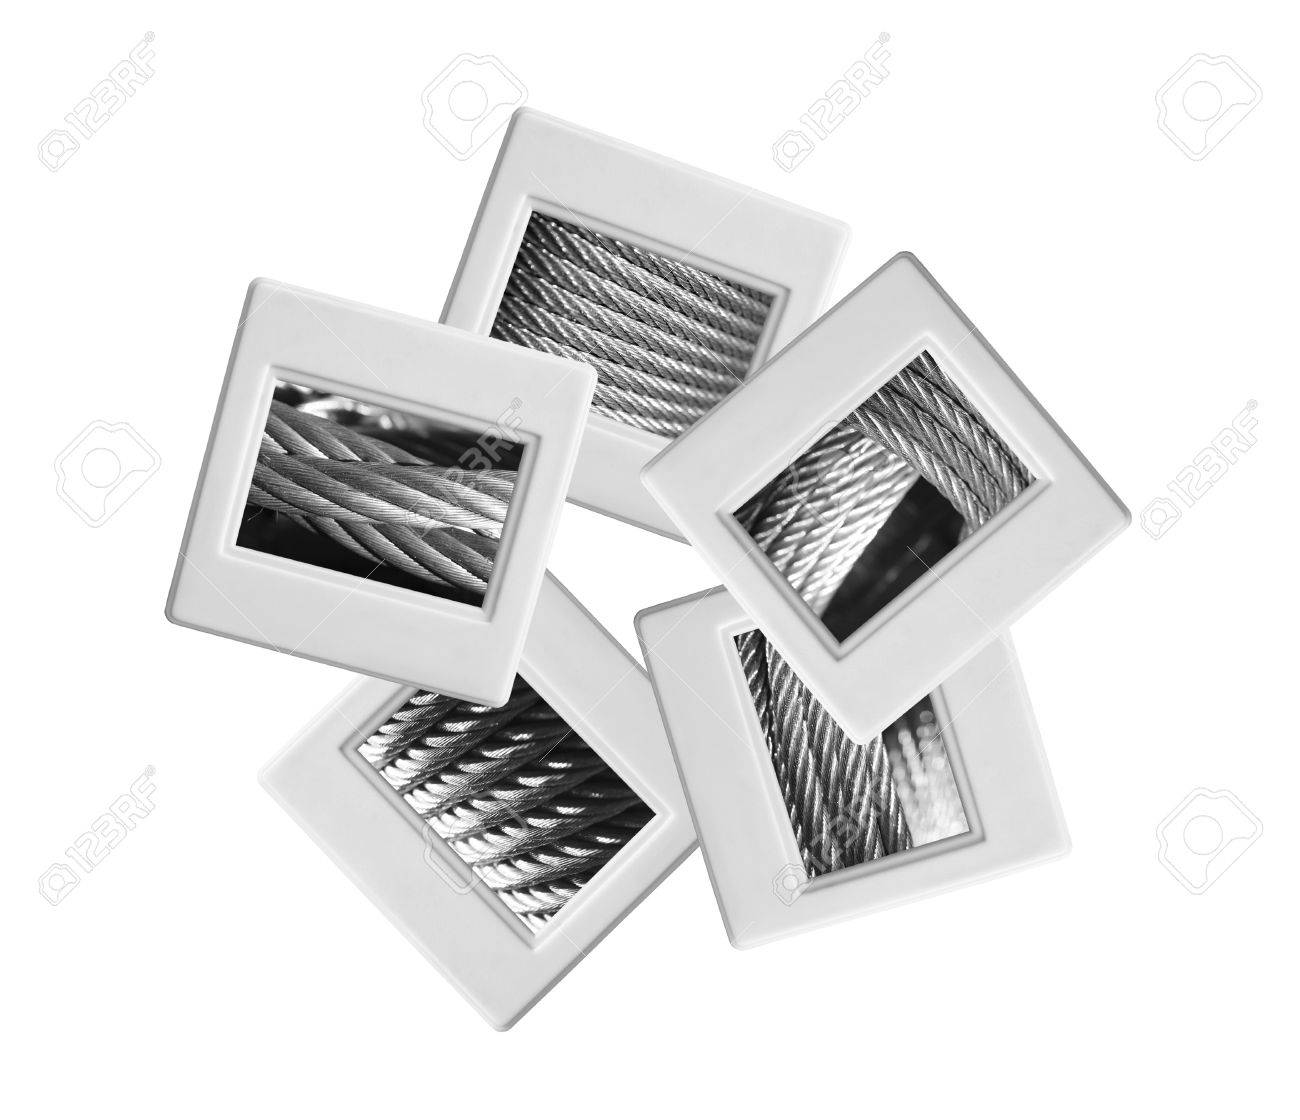 industrial slides on white background stock photo picture and